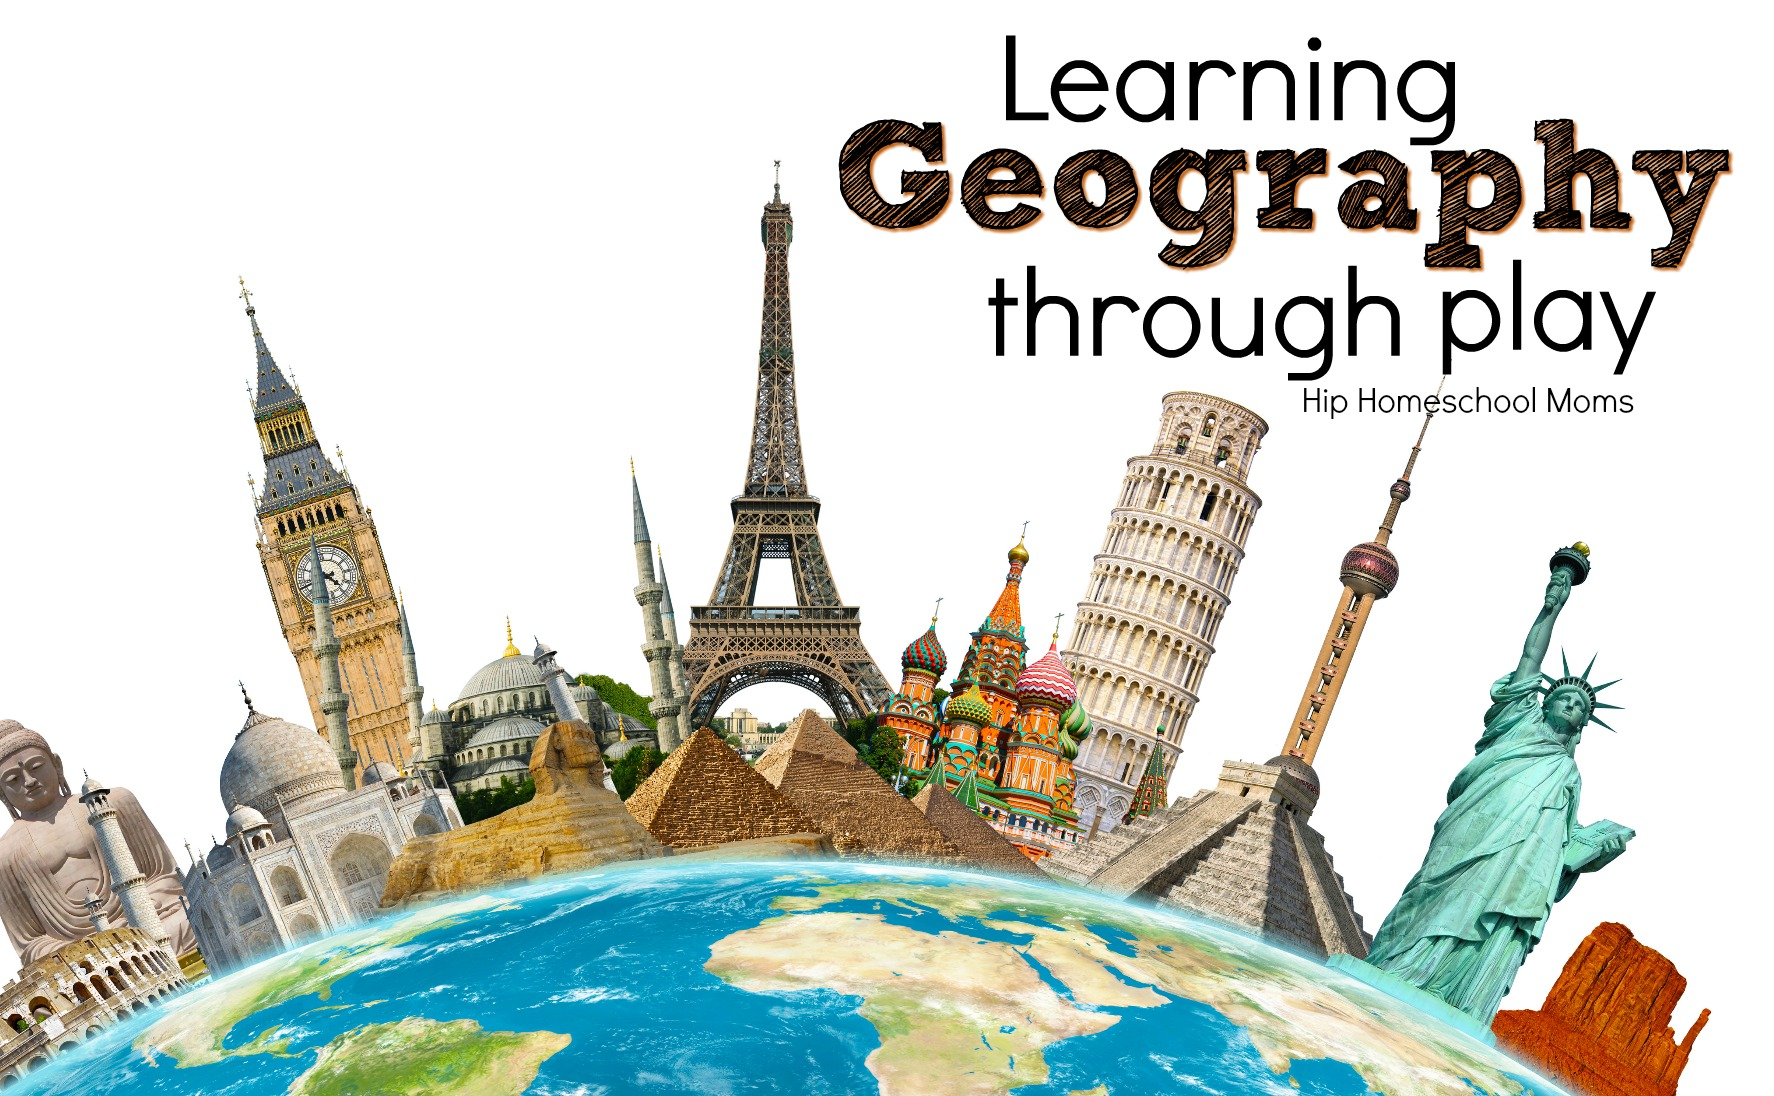 Learning Geography Through Play